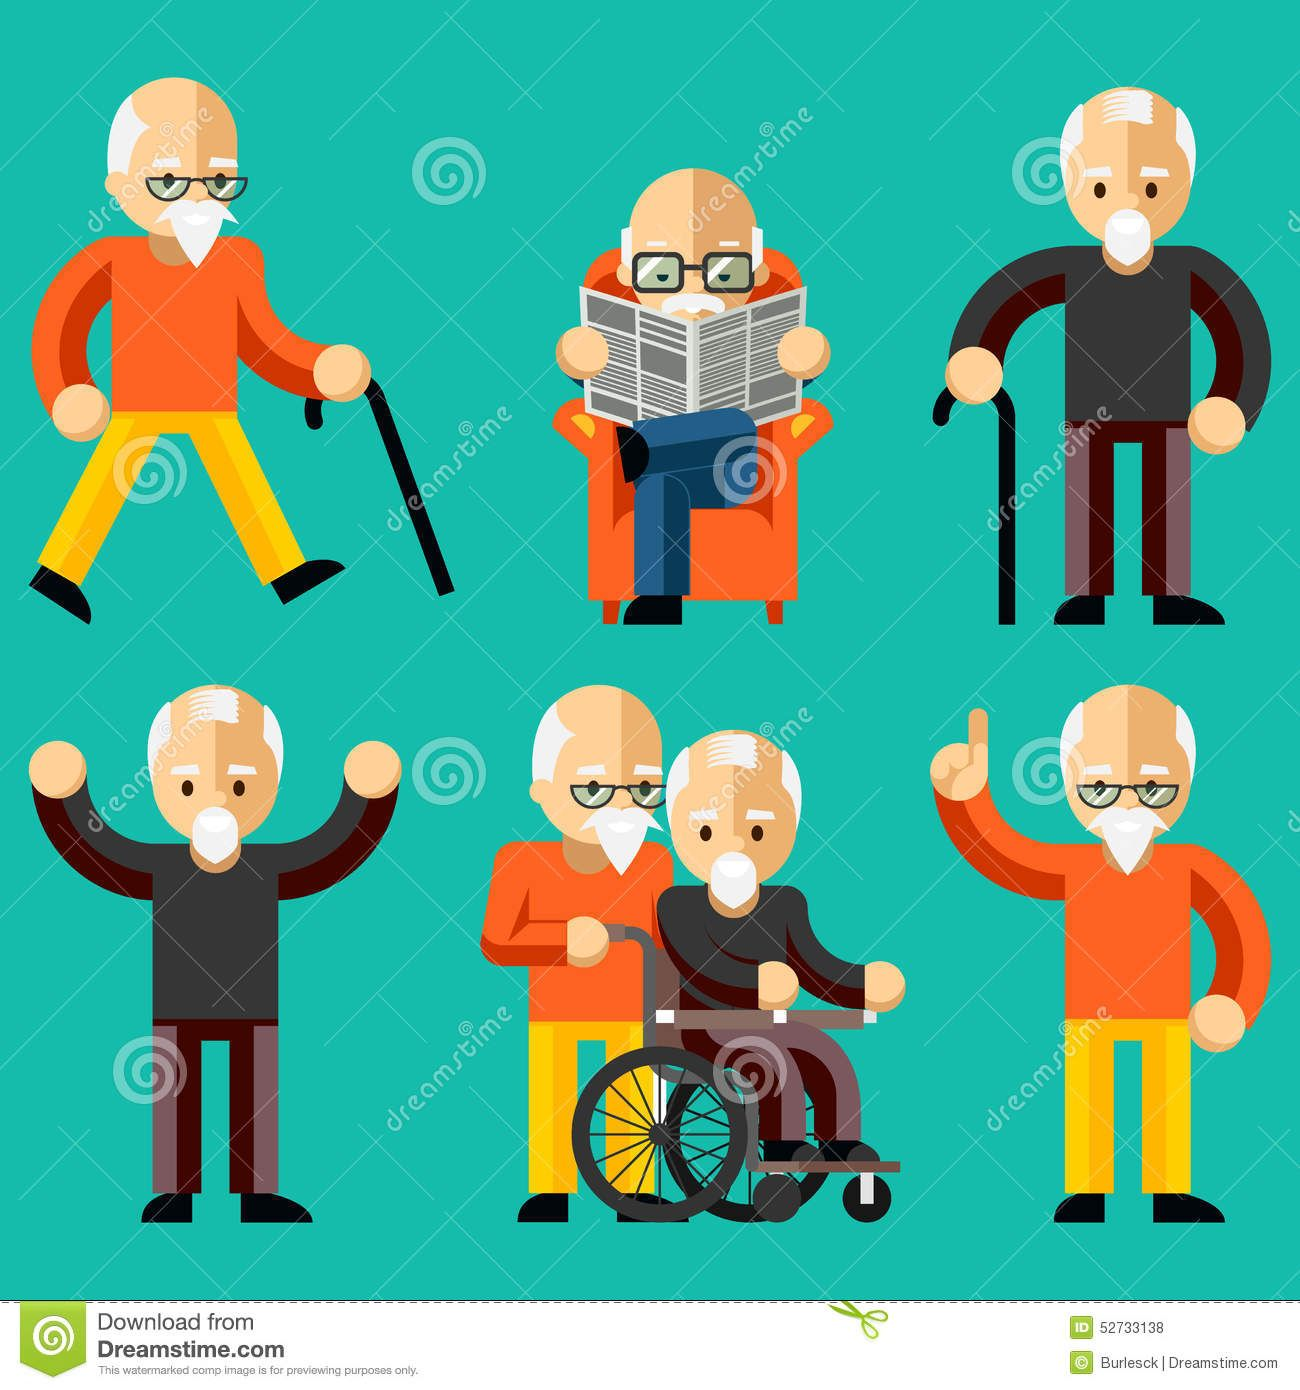 business plan for residential care home